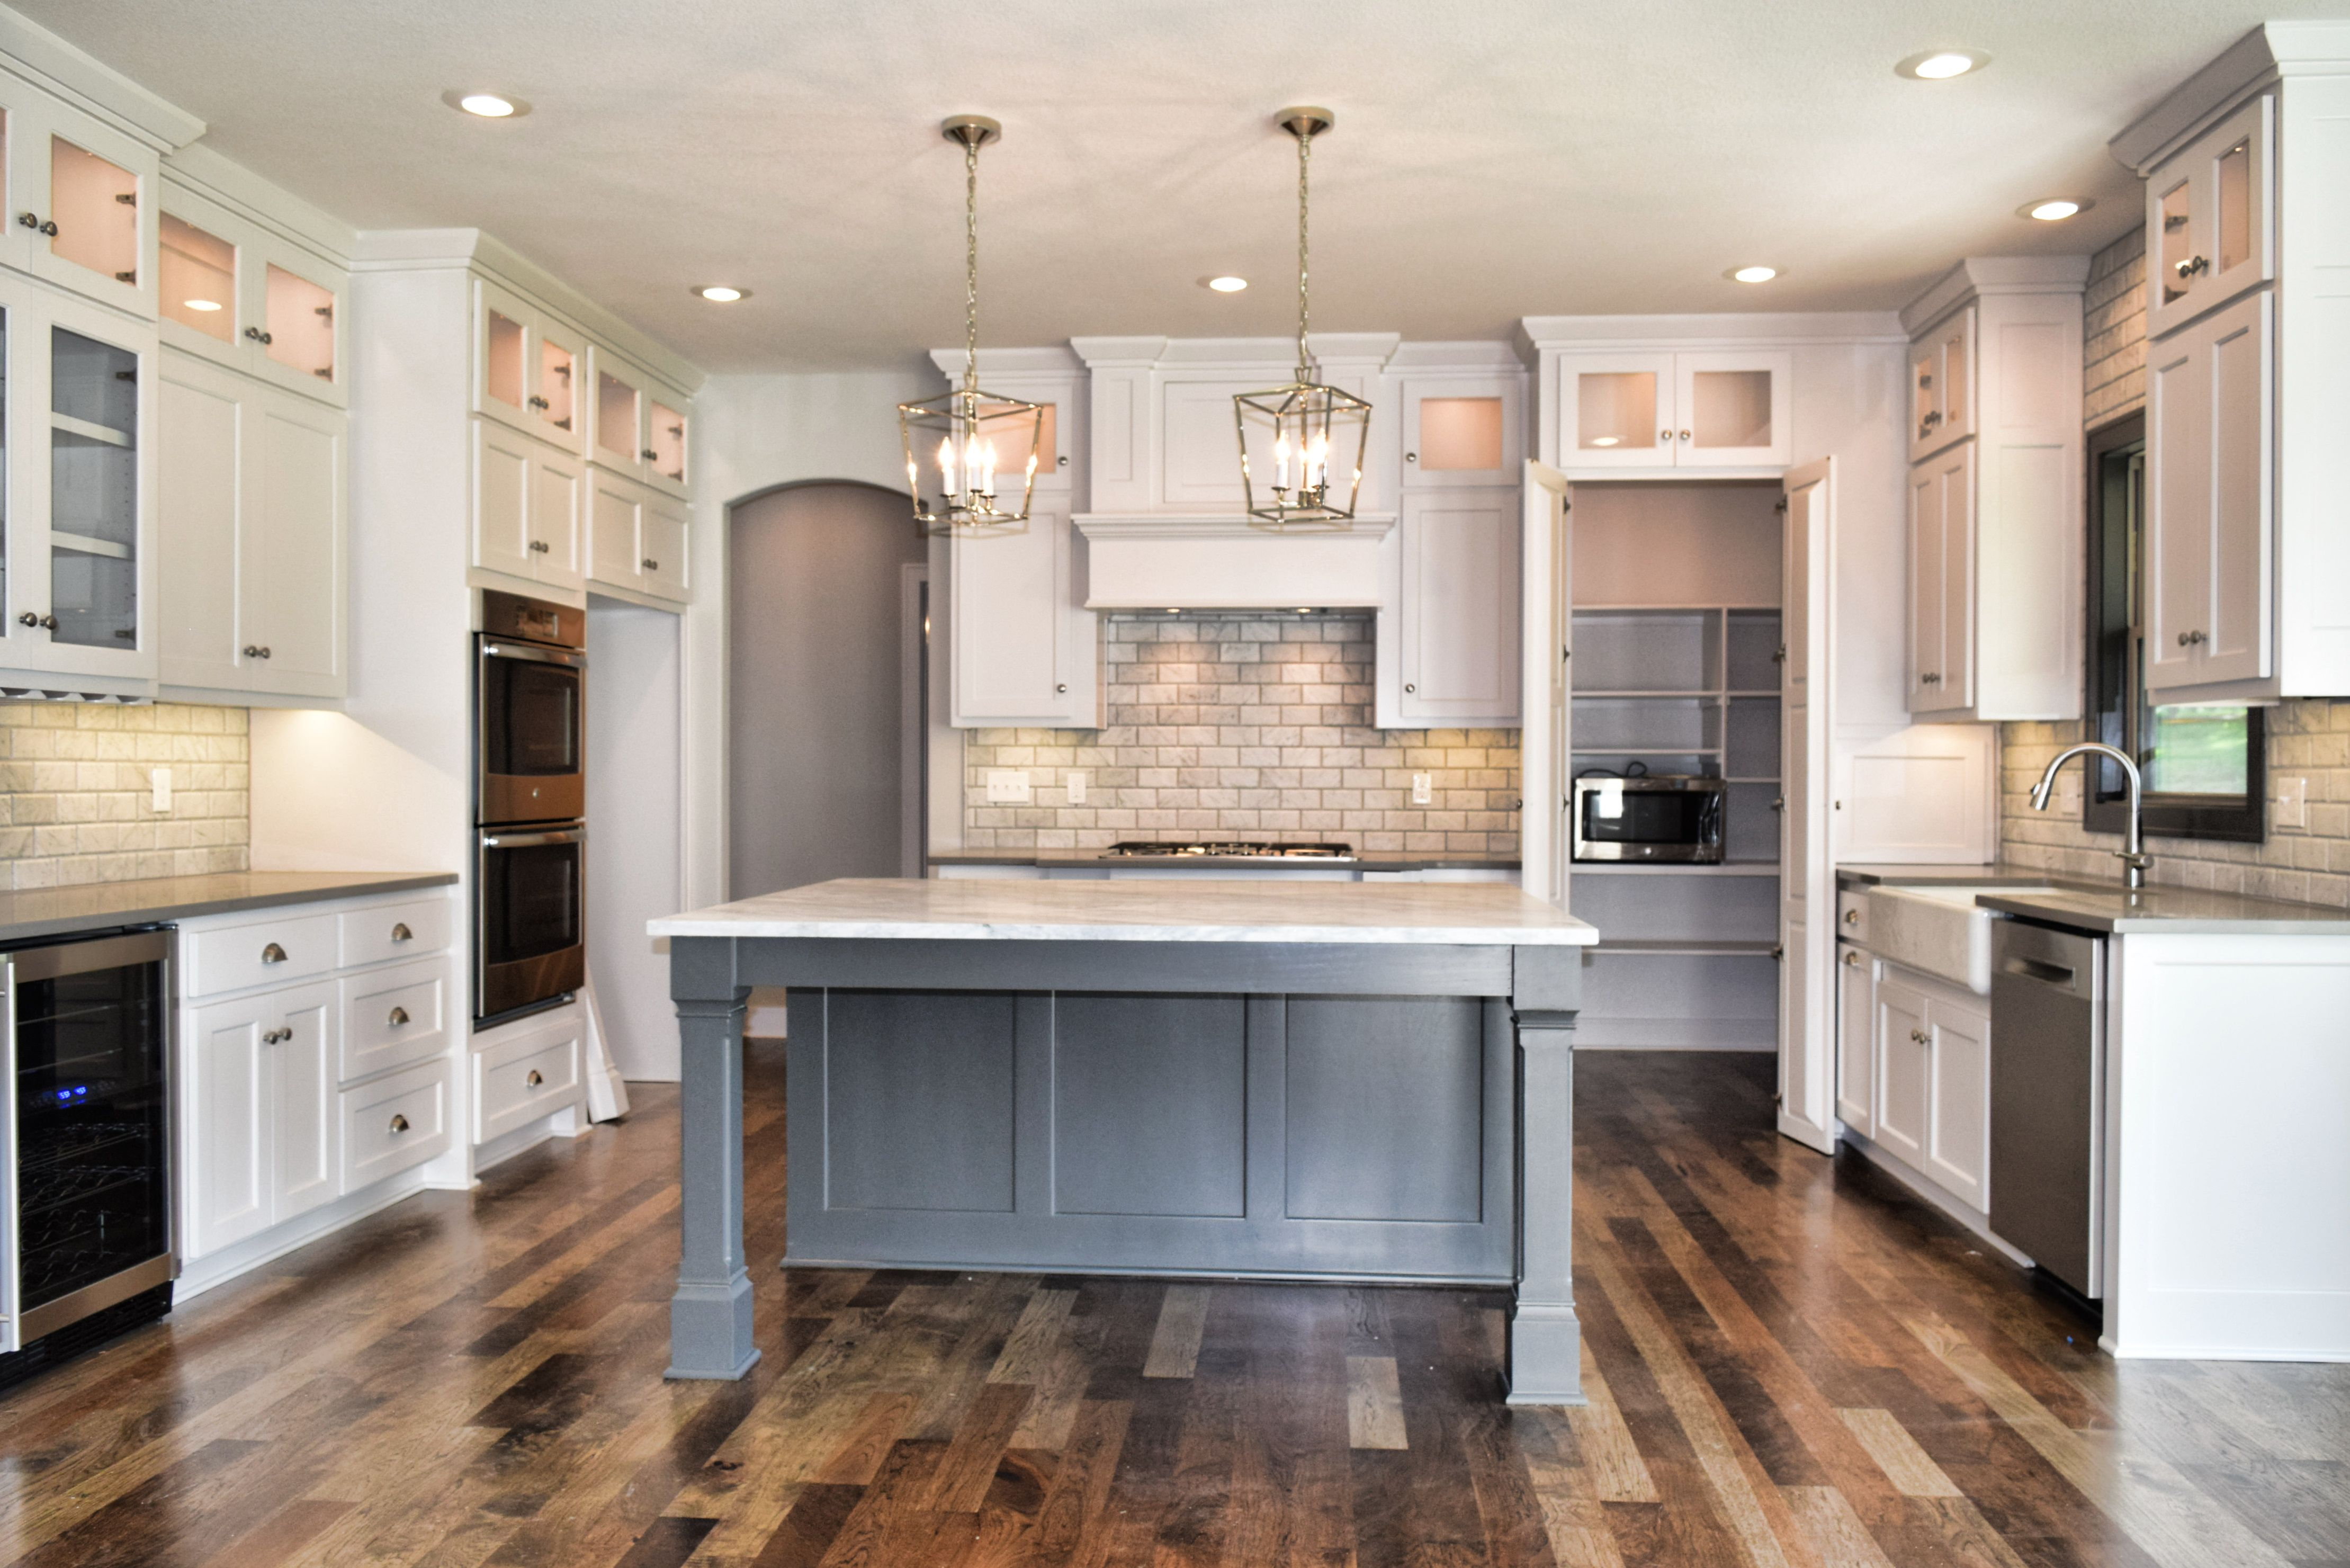 I Model Home Gallery Johnson County Ks New Home Builders Home Home Builders